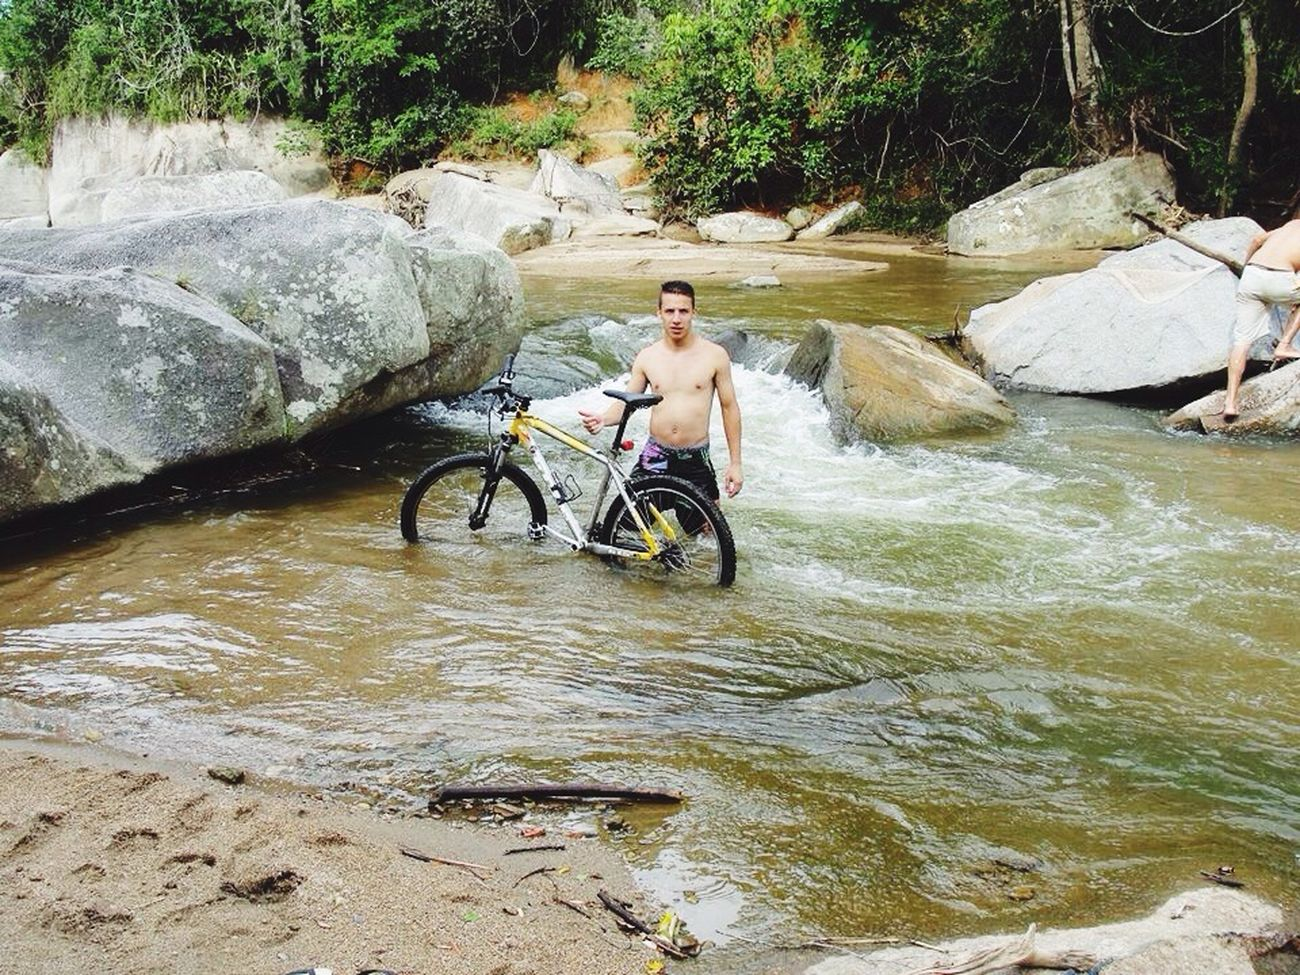 Rio itáoca Rio Hello World Enjoying Life That's Me Bike Mountain Biking